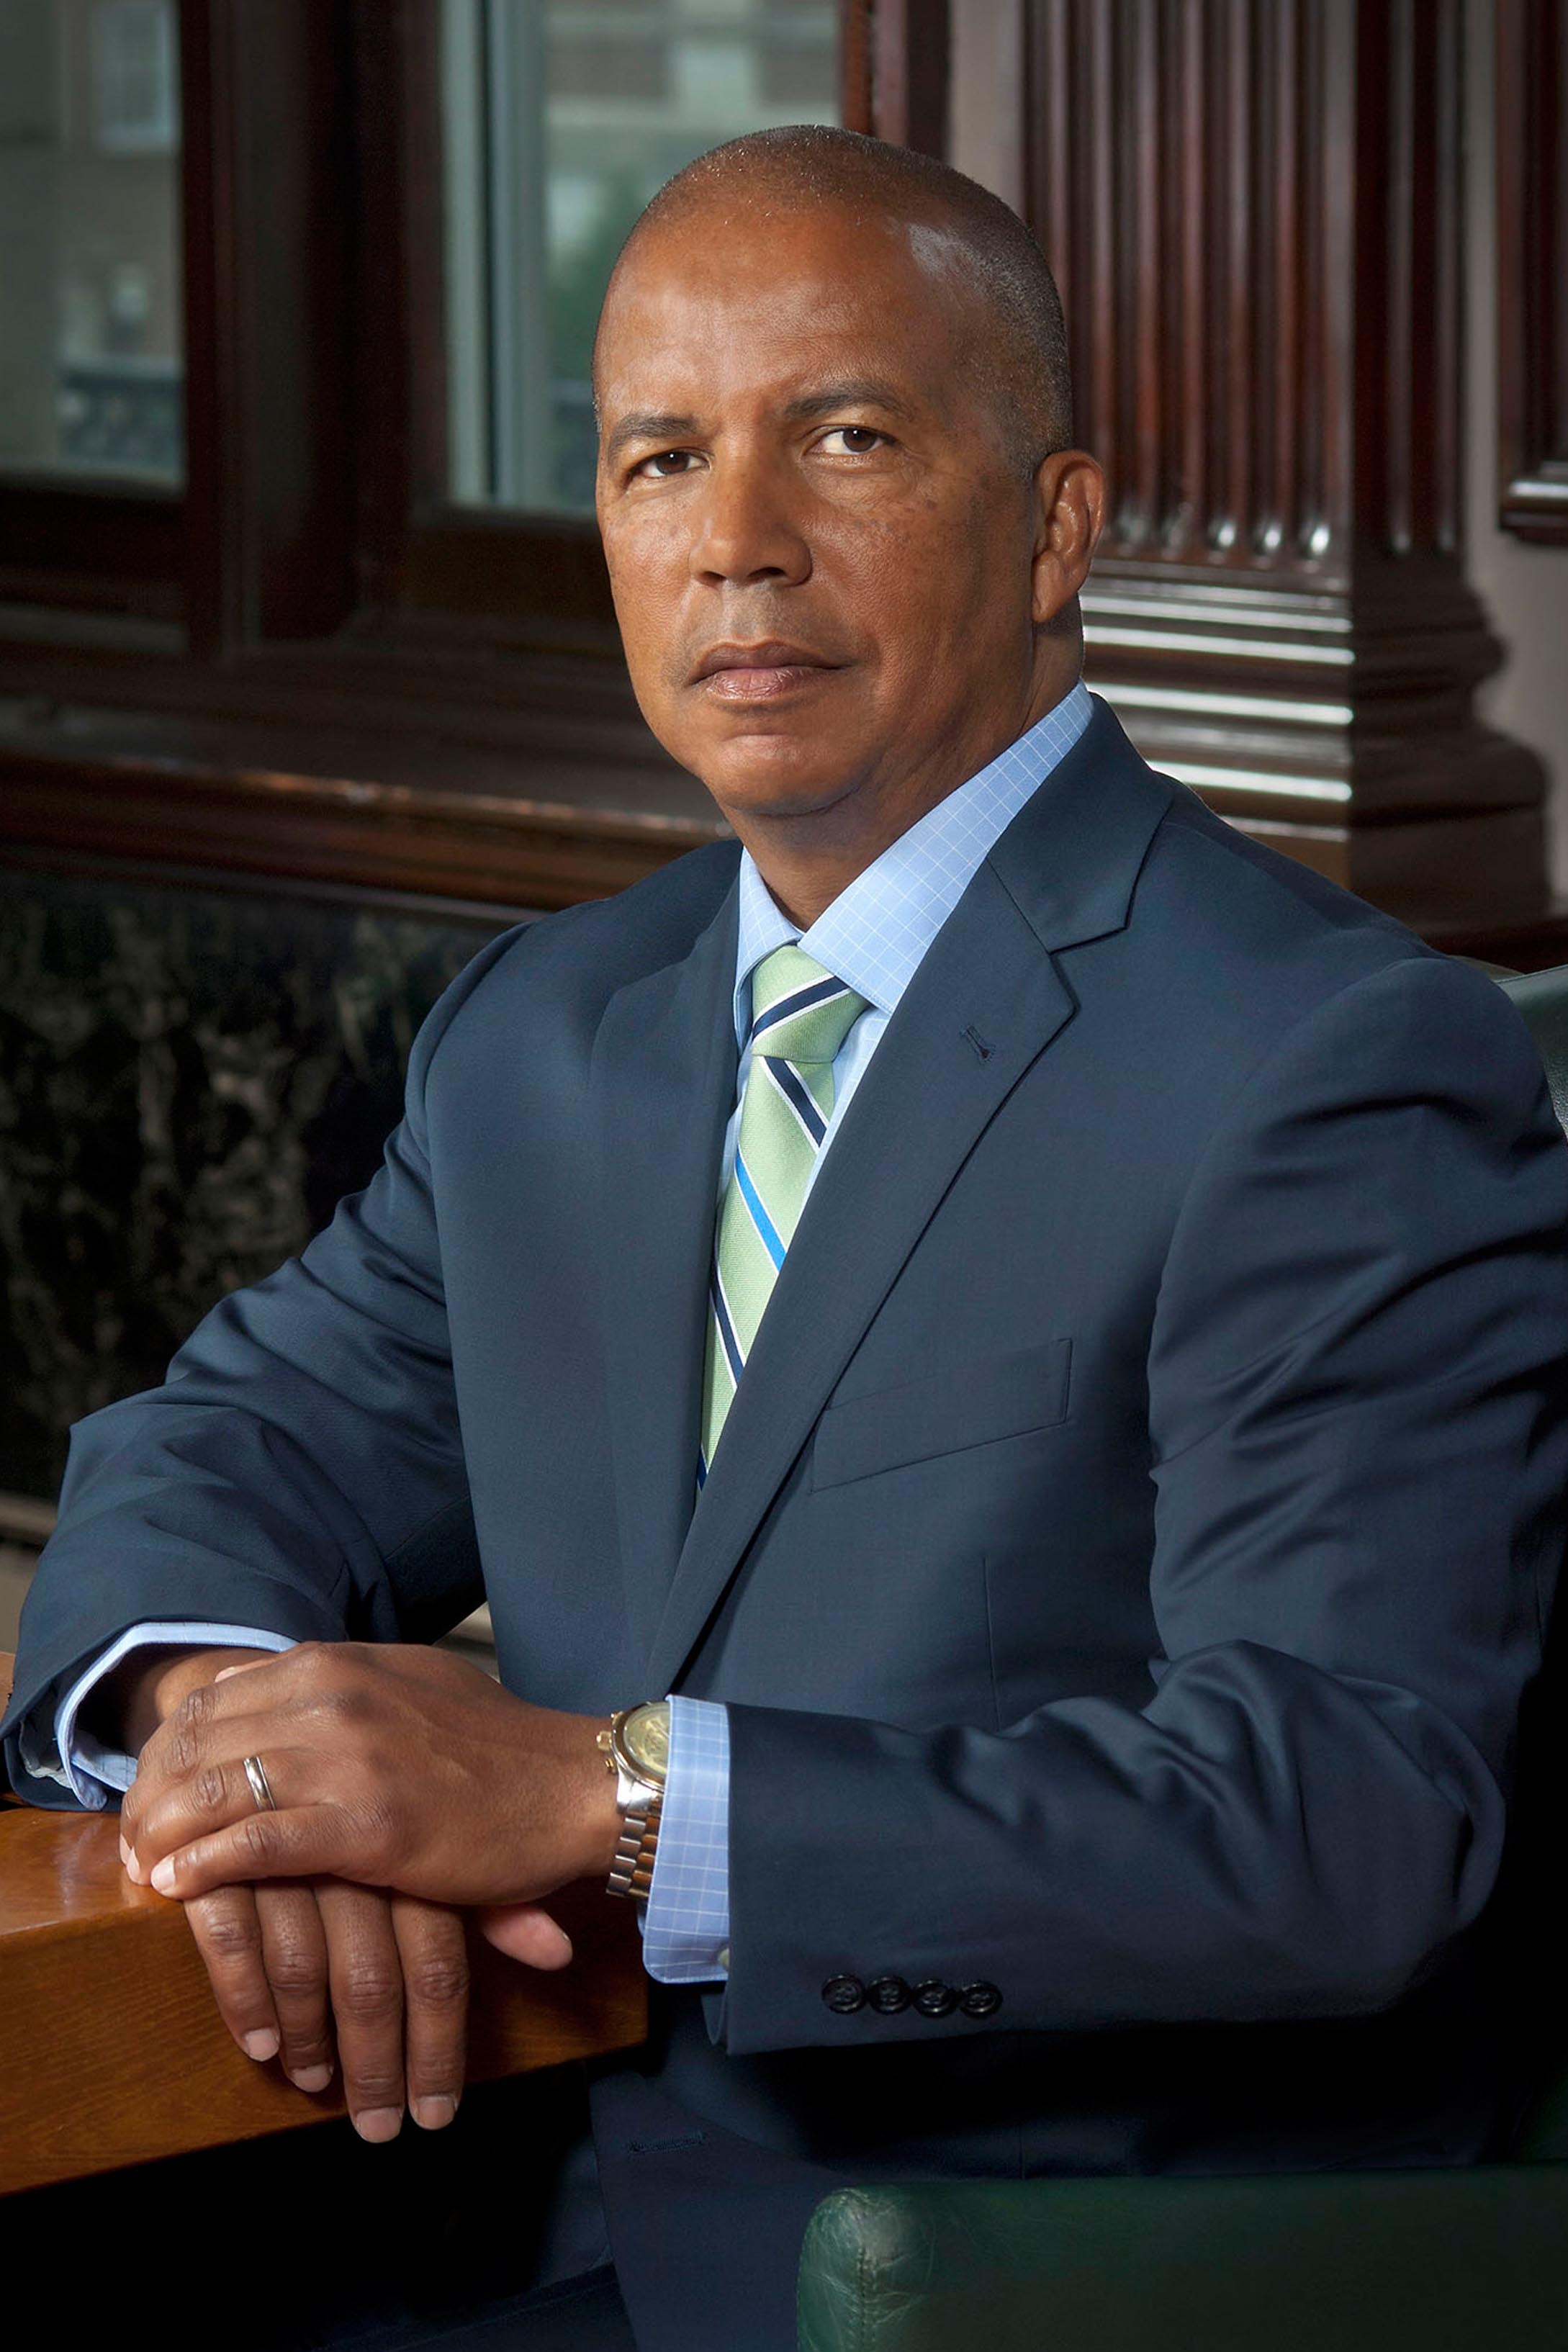 Dr. Donald Generals, the sixth president of Community College of Philadelphia